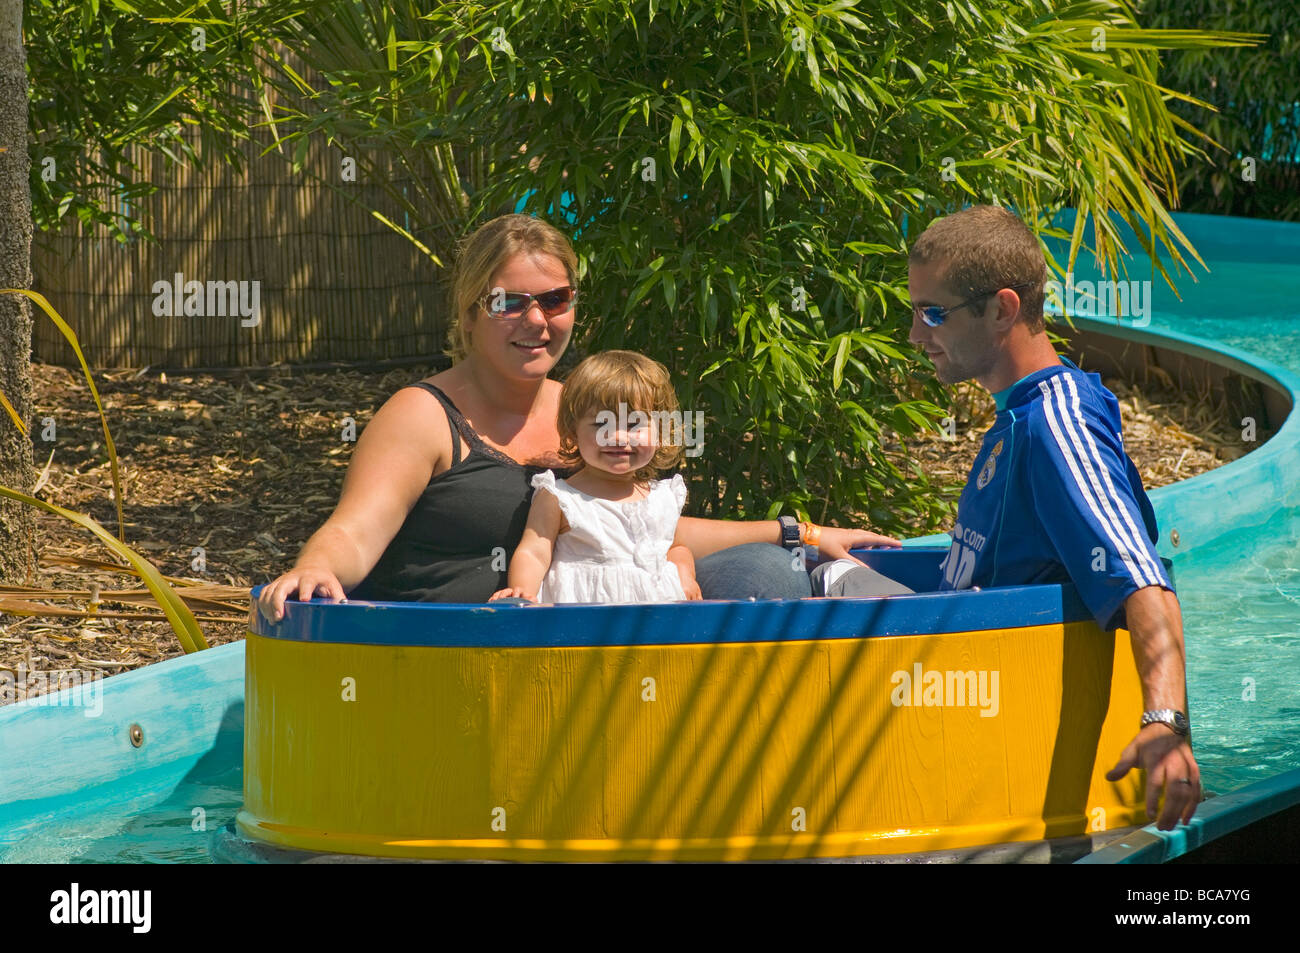 Mother Father and Young Baby Daughter On An Amusement Park Water Ride - Stock Image